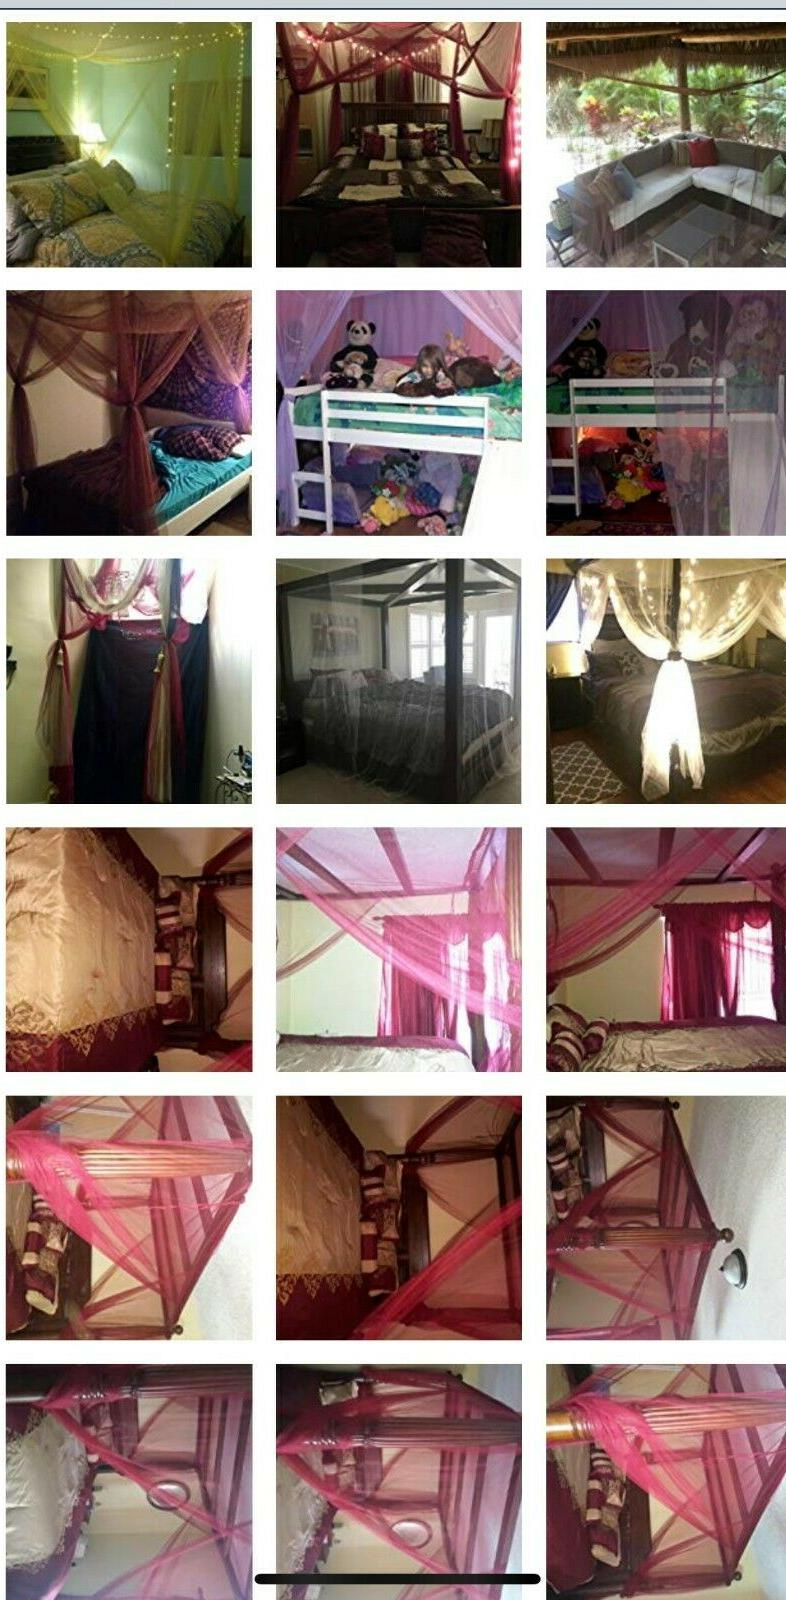 OctoRose bed canopy fit all